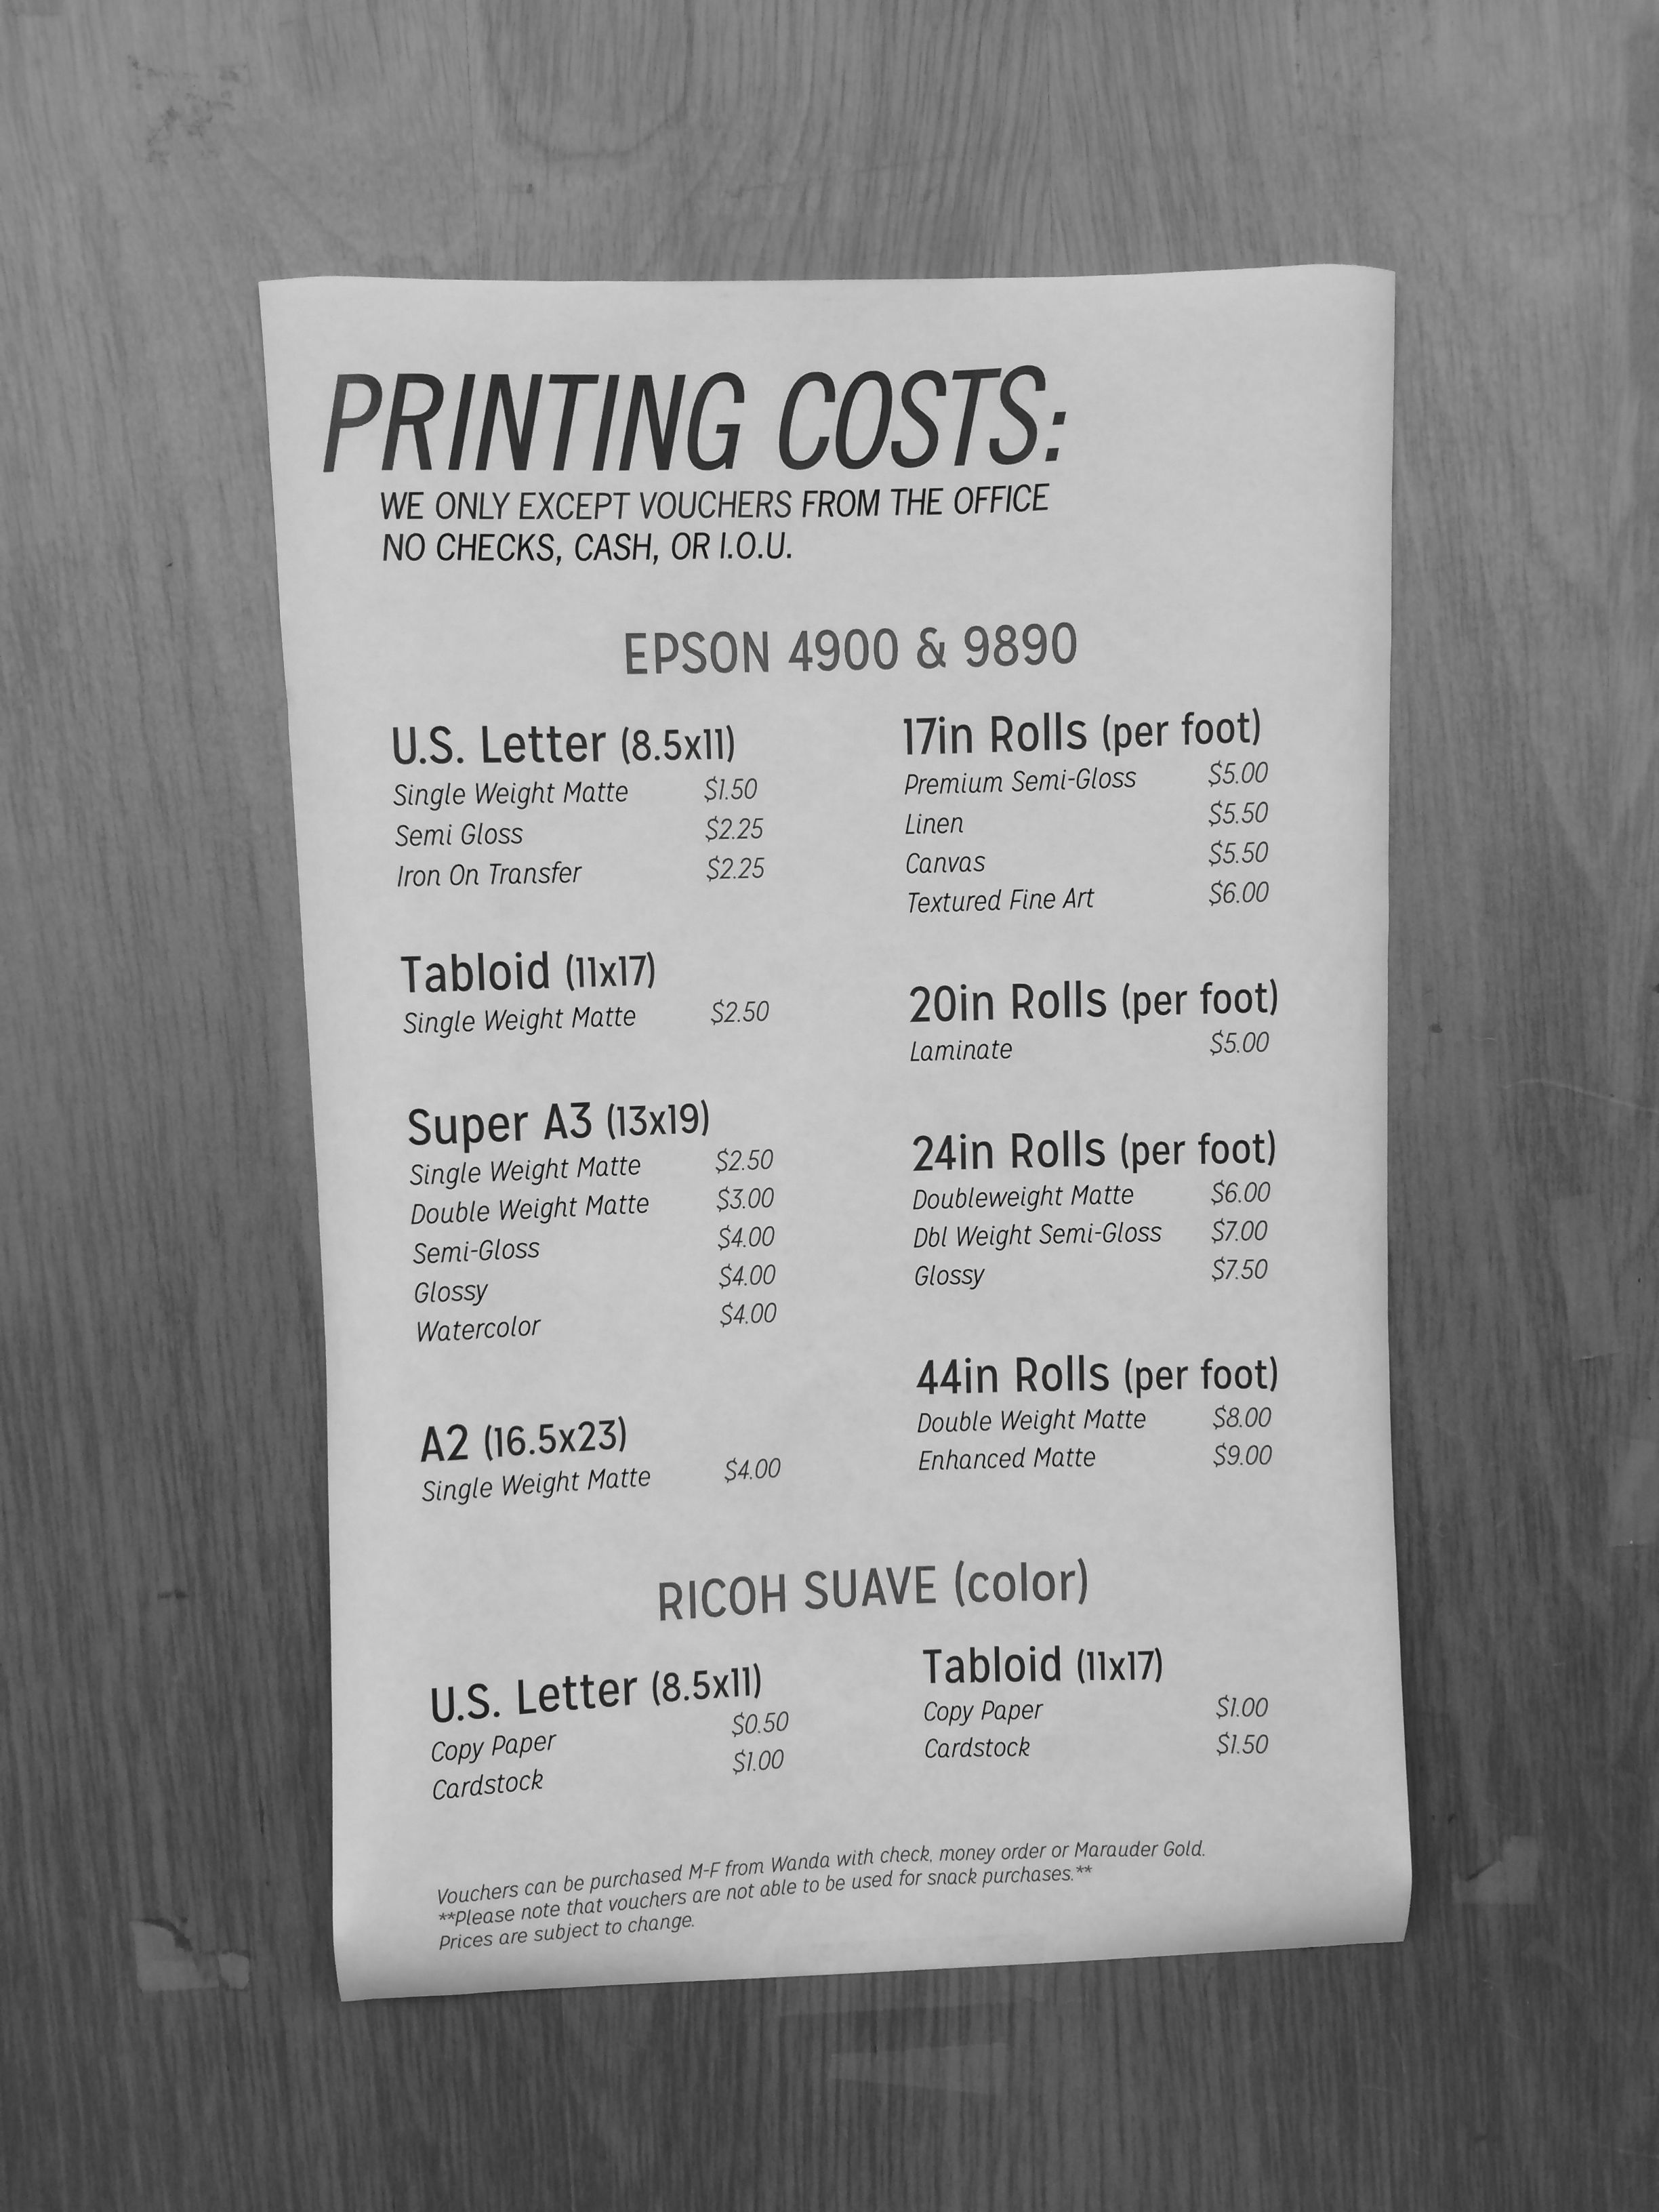 Printing Costs At Millersville University Millersville University Printing Costs Prints